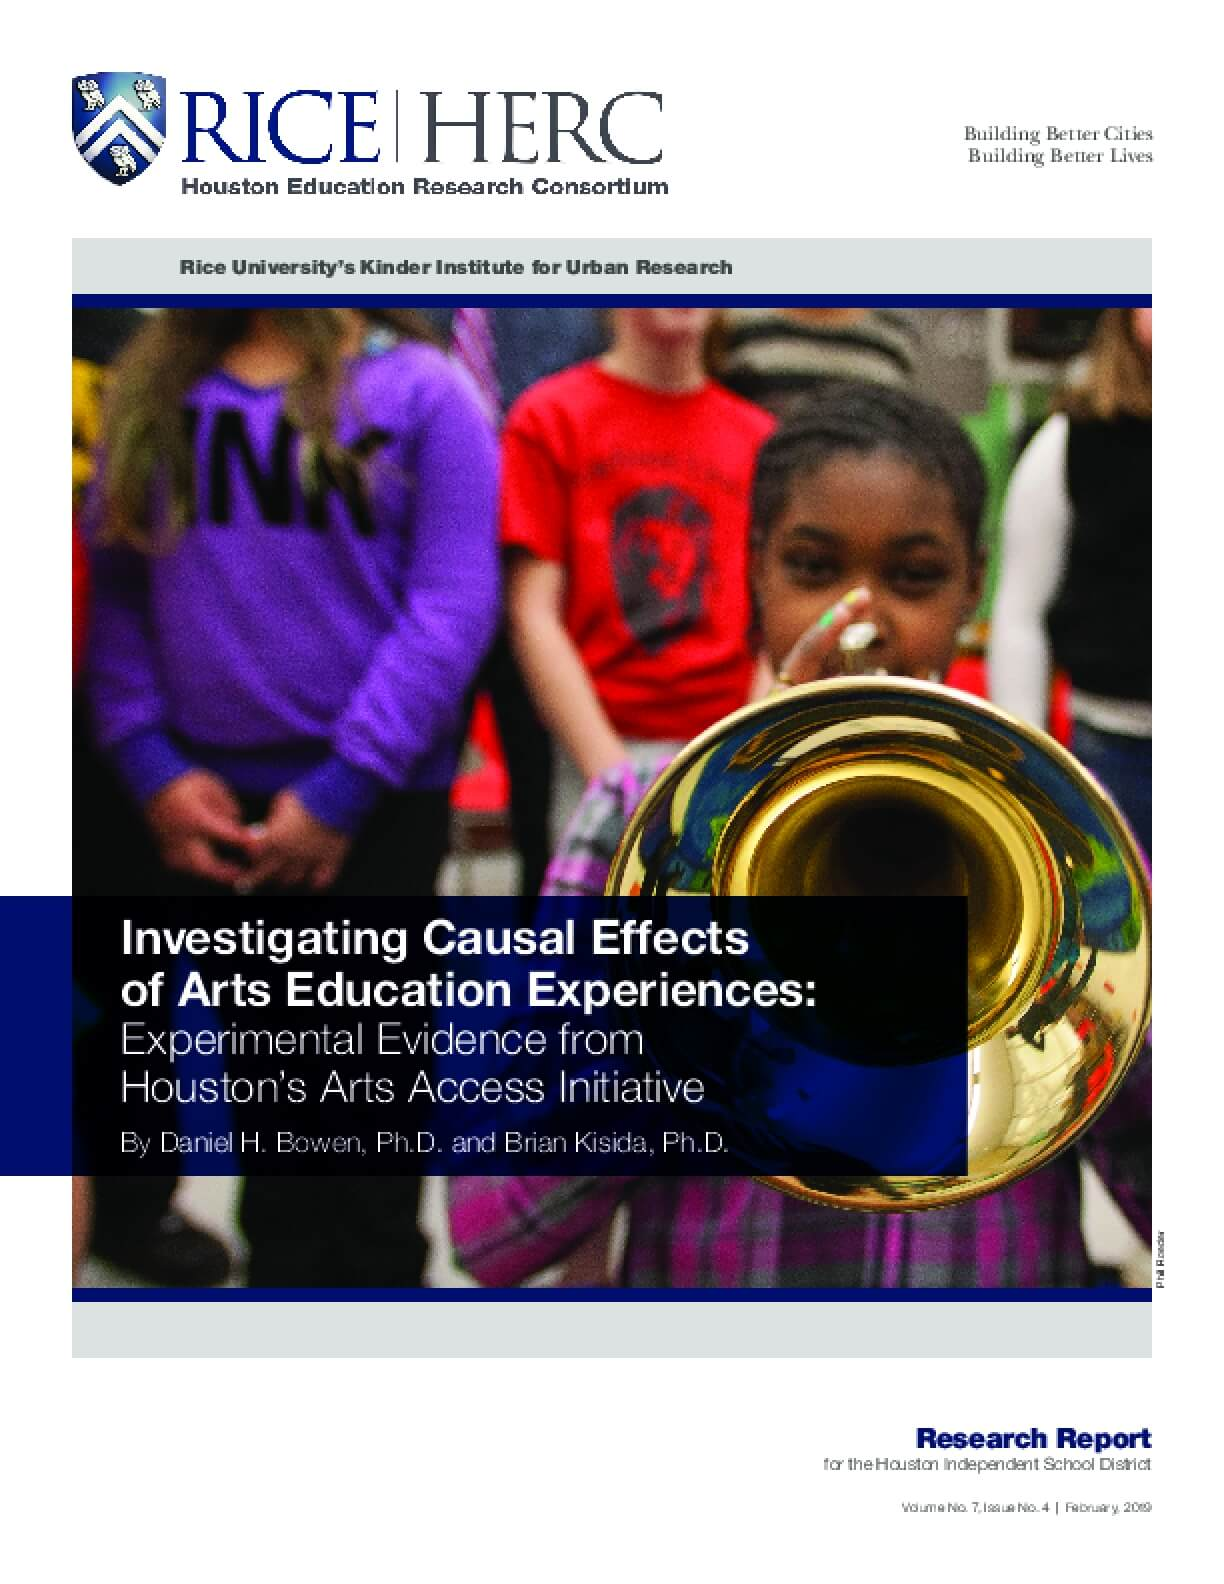 Investigating Causal Effects of Arts Education Experiences: Experimental Evidence from Houston's Arts Access Initiative